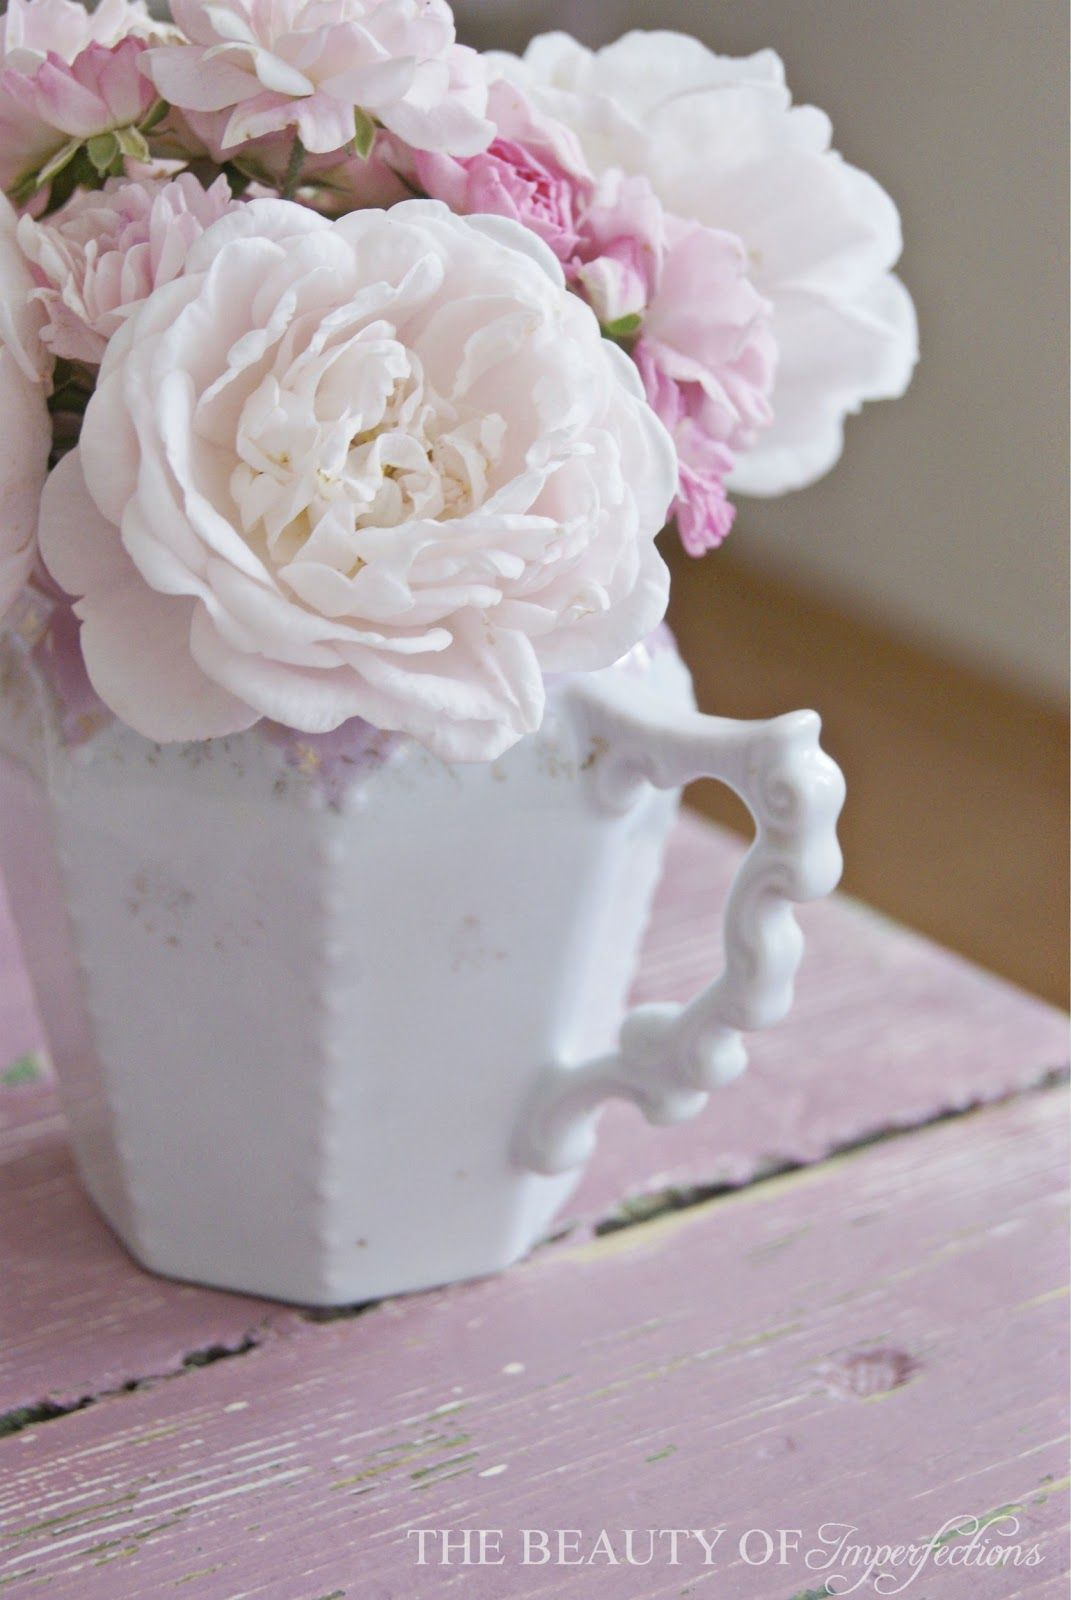 New post on Magical imperfections and pretty treasures: Treasures Roses